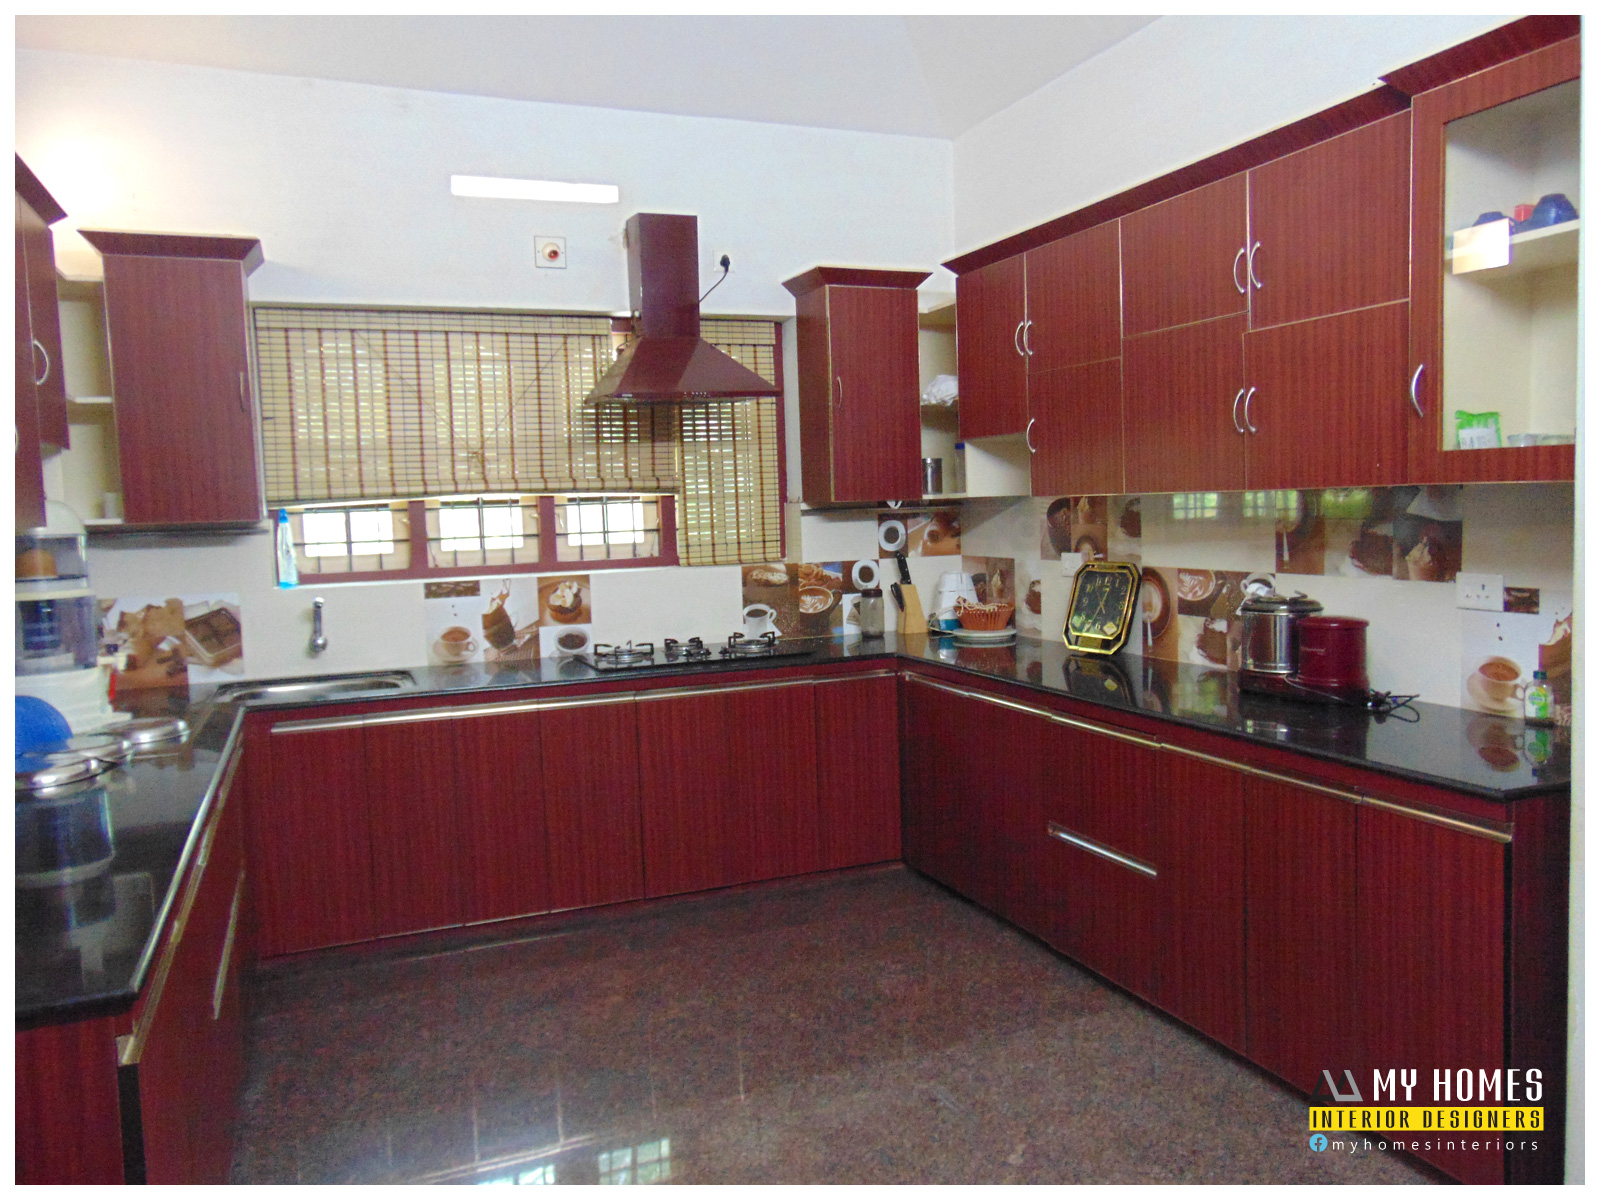 Modern modular kitchen design keralakerala interior design ideas from designing company thrissur. Latest Kitchen Designs In Kerala. Home Design Ideas